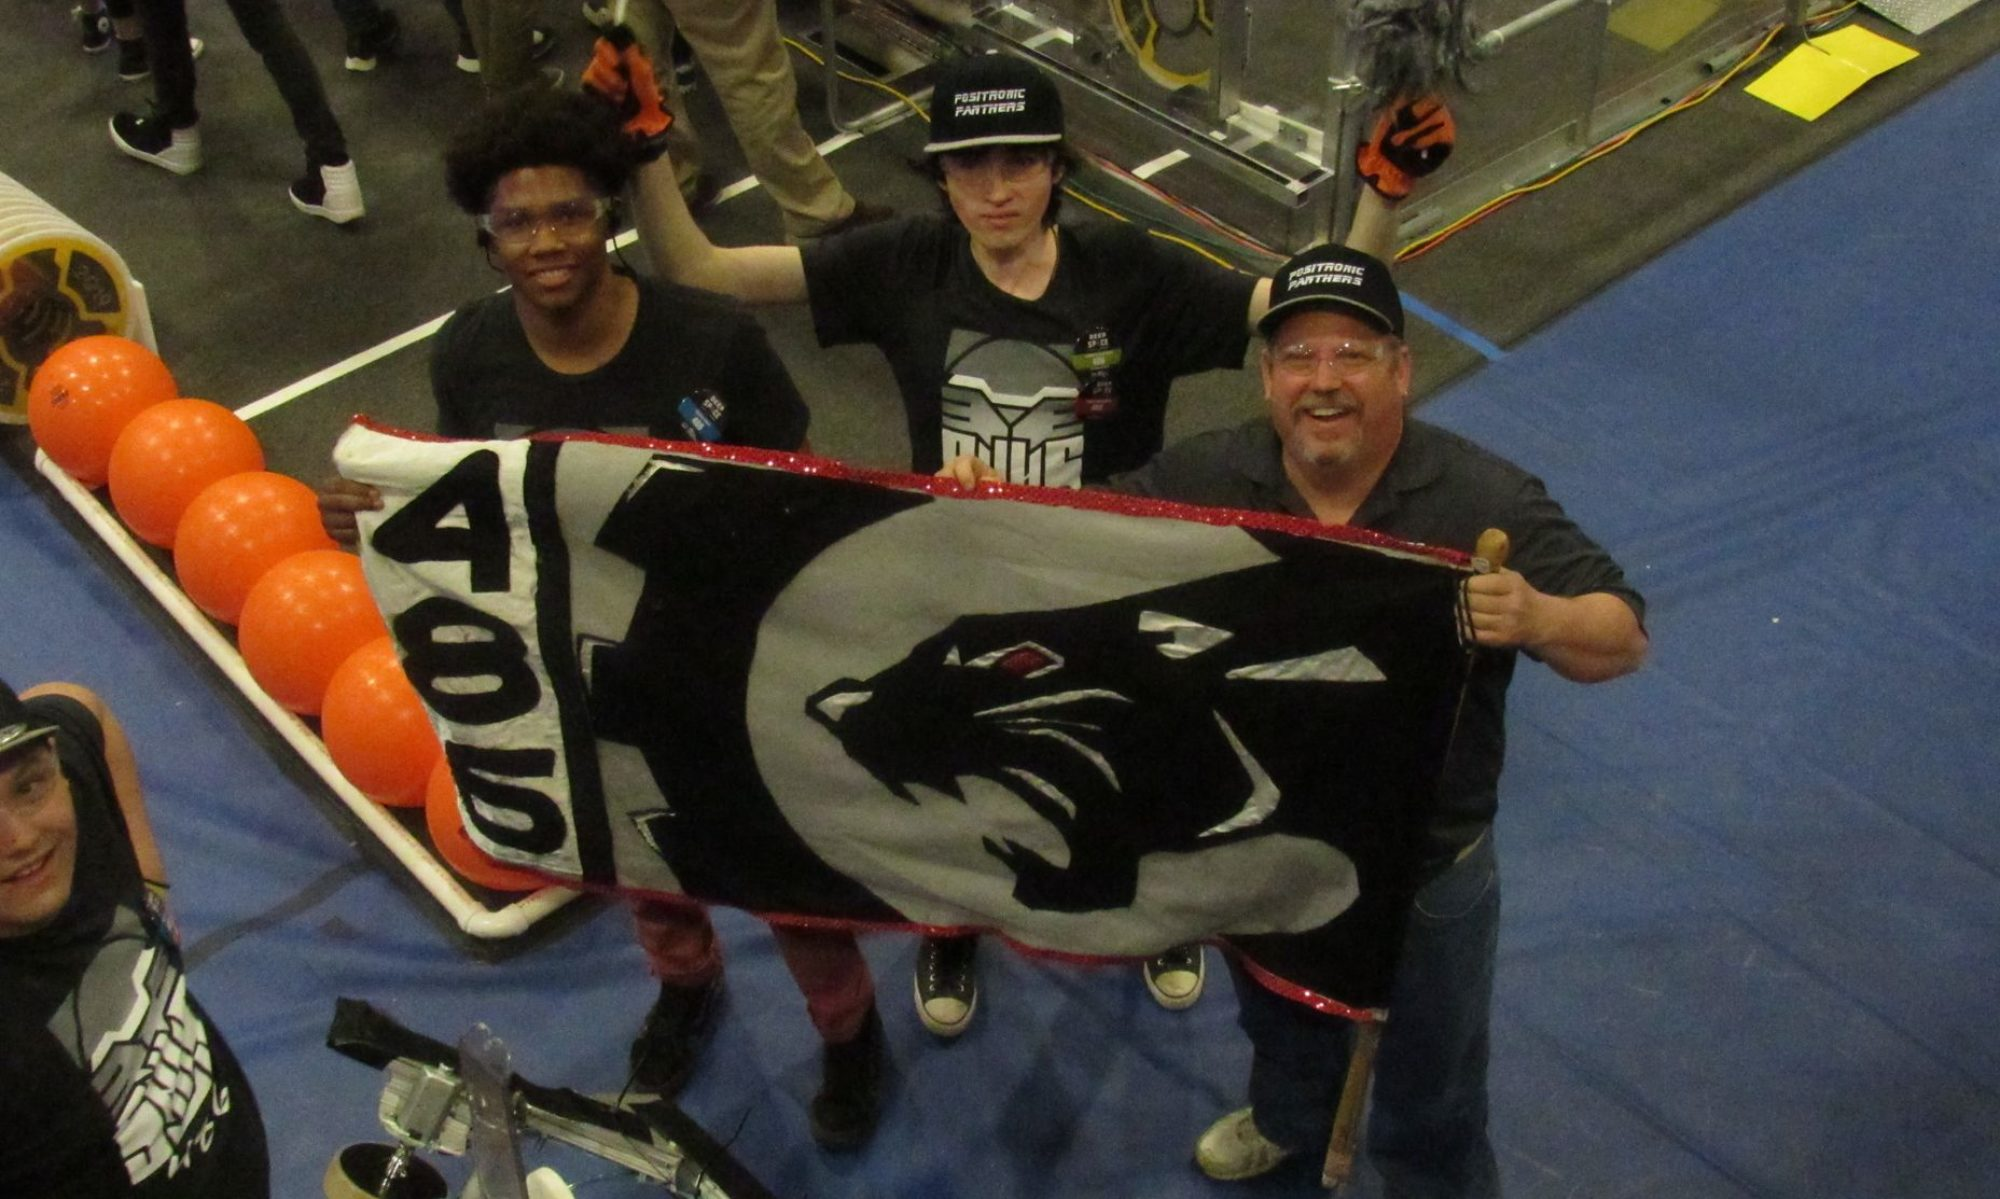 FRC Team 486 - Positronic Panthers